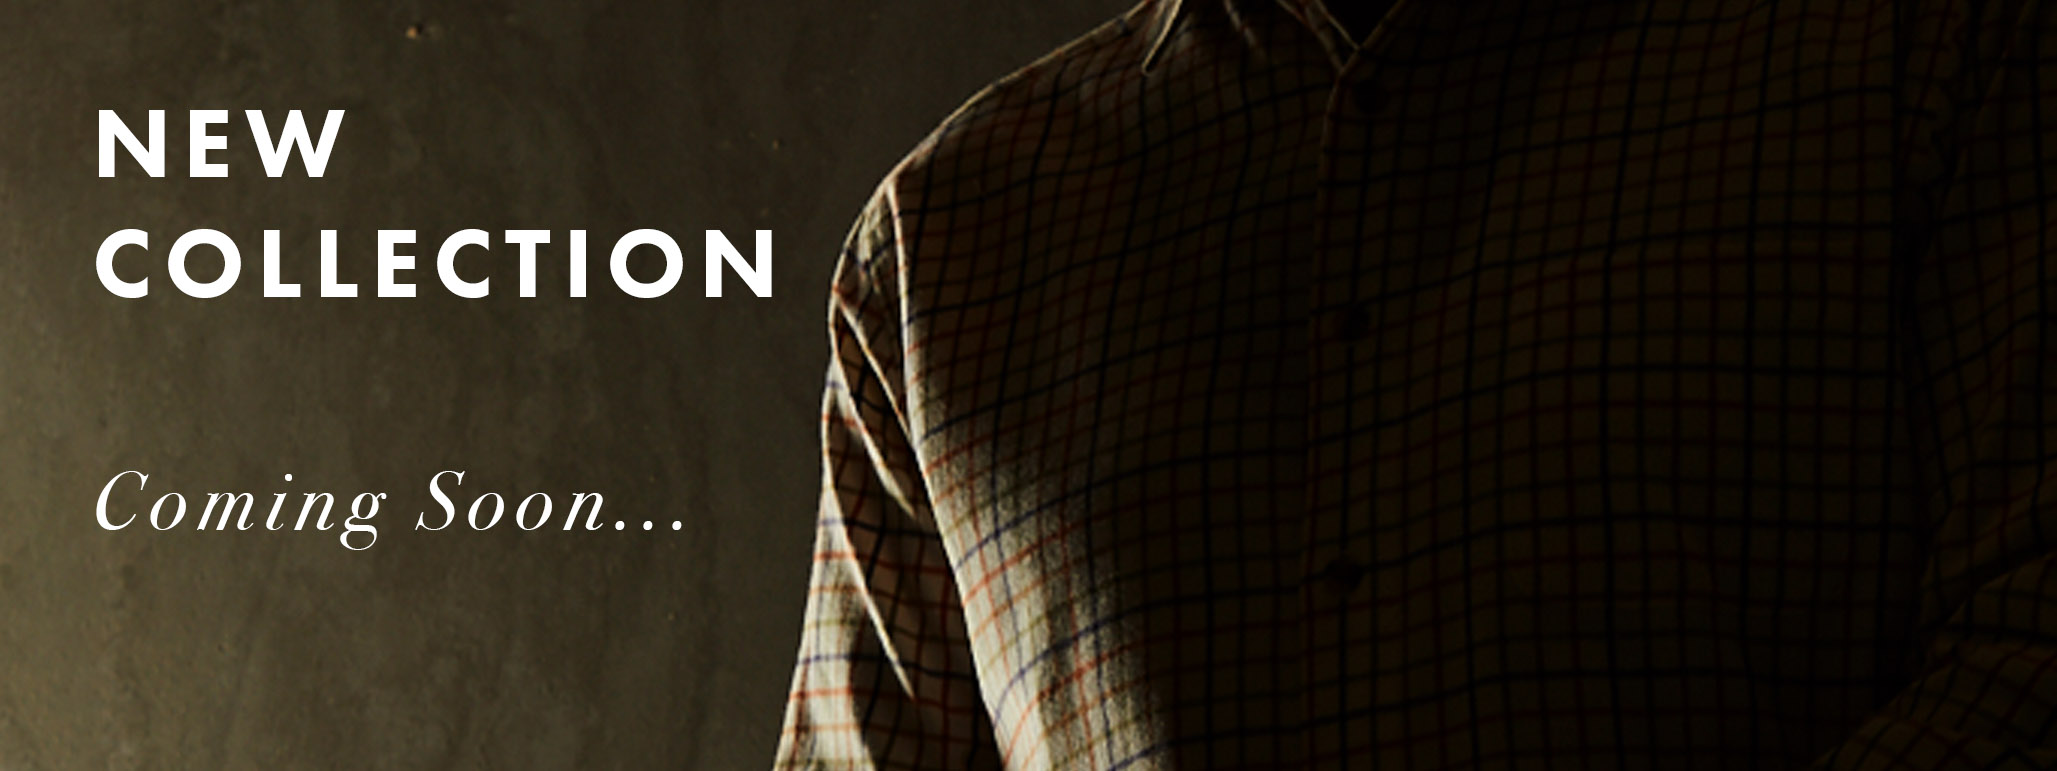 Prepare for Autumn Winter with our New Collection